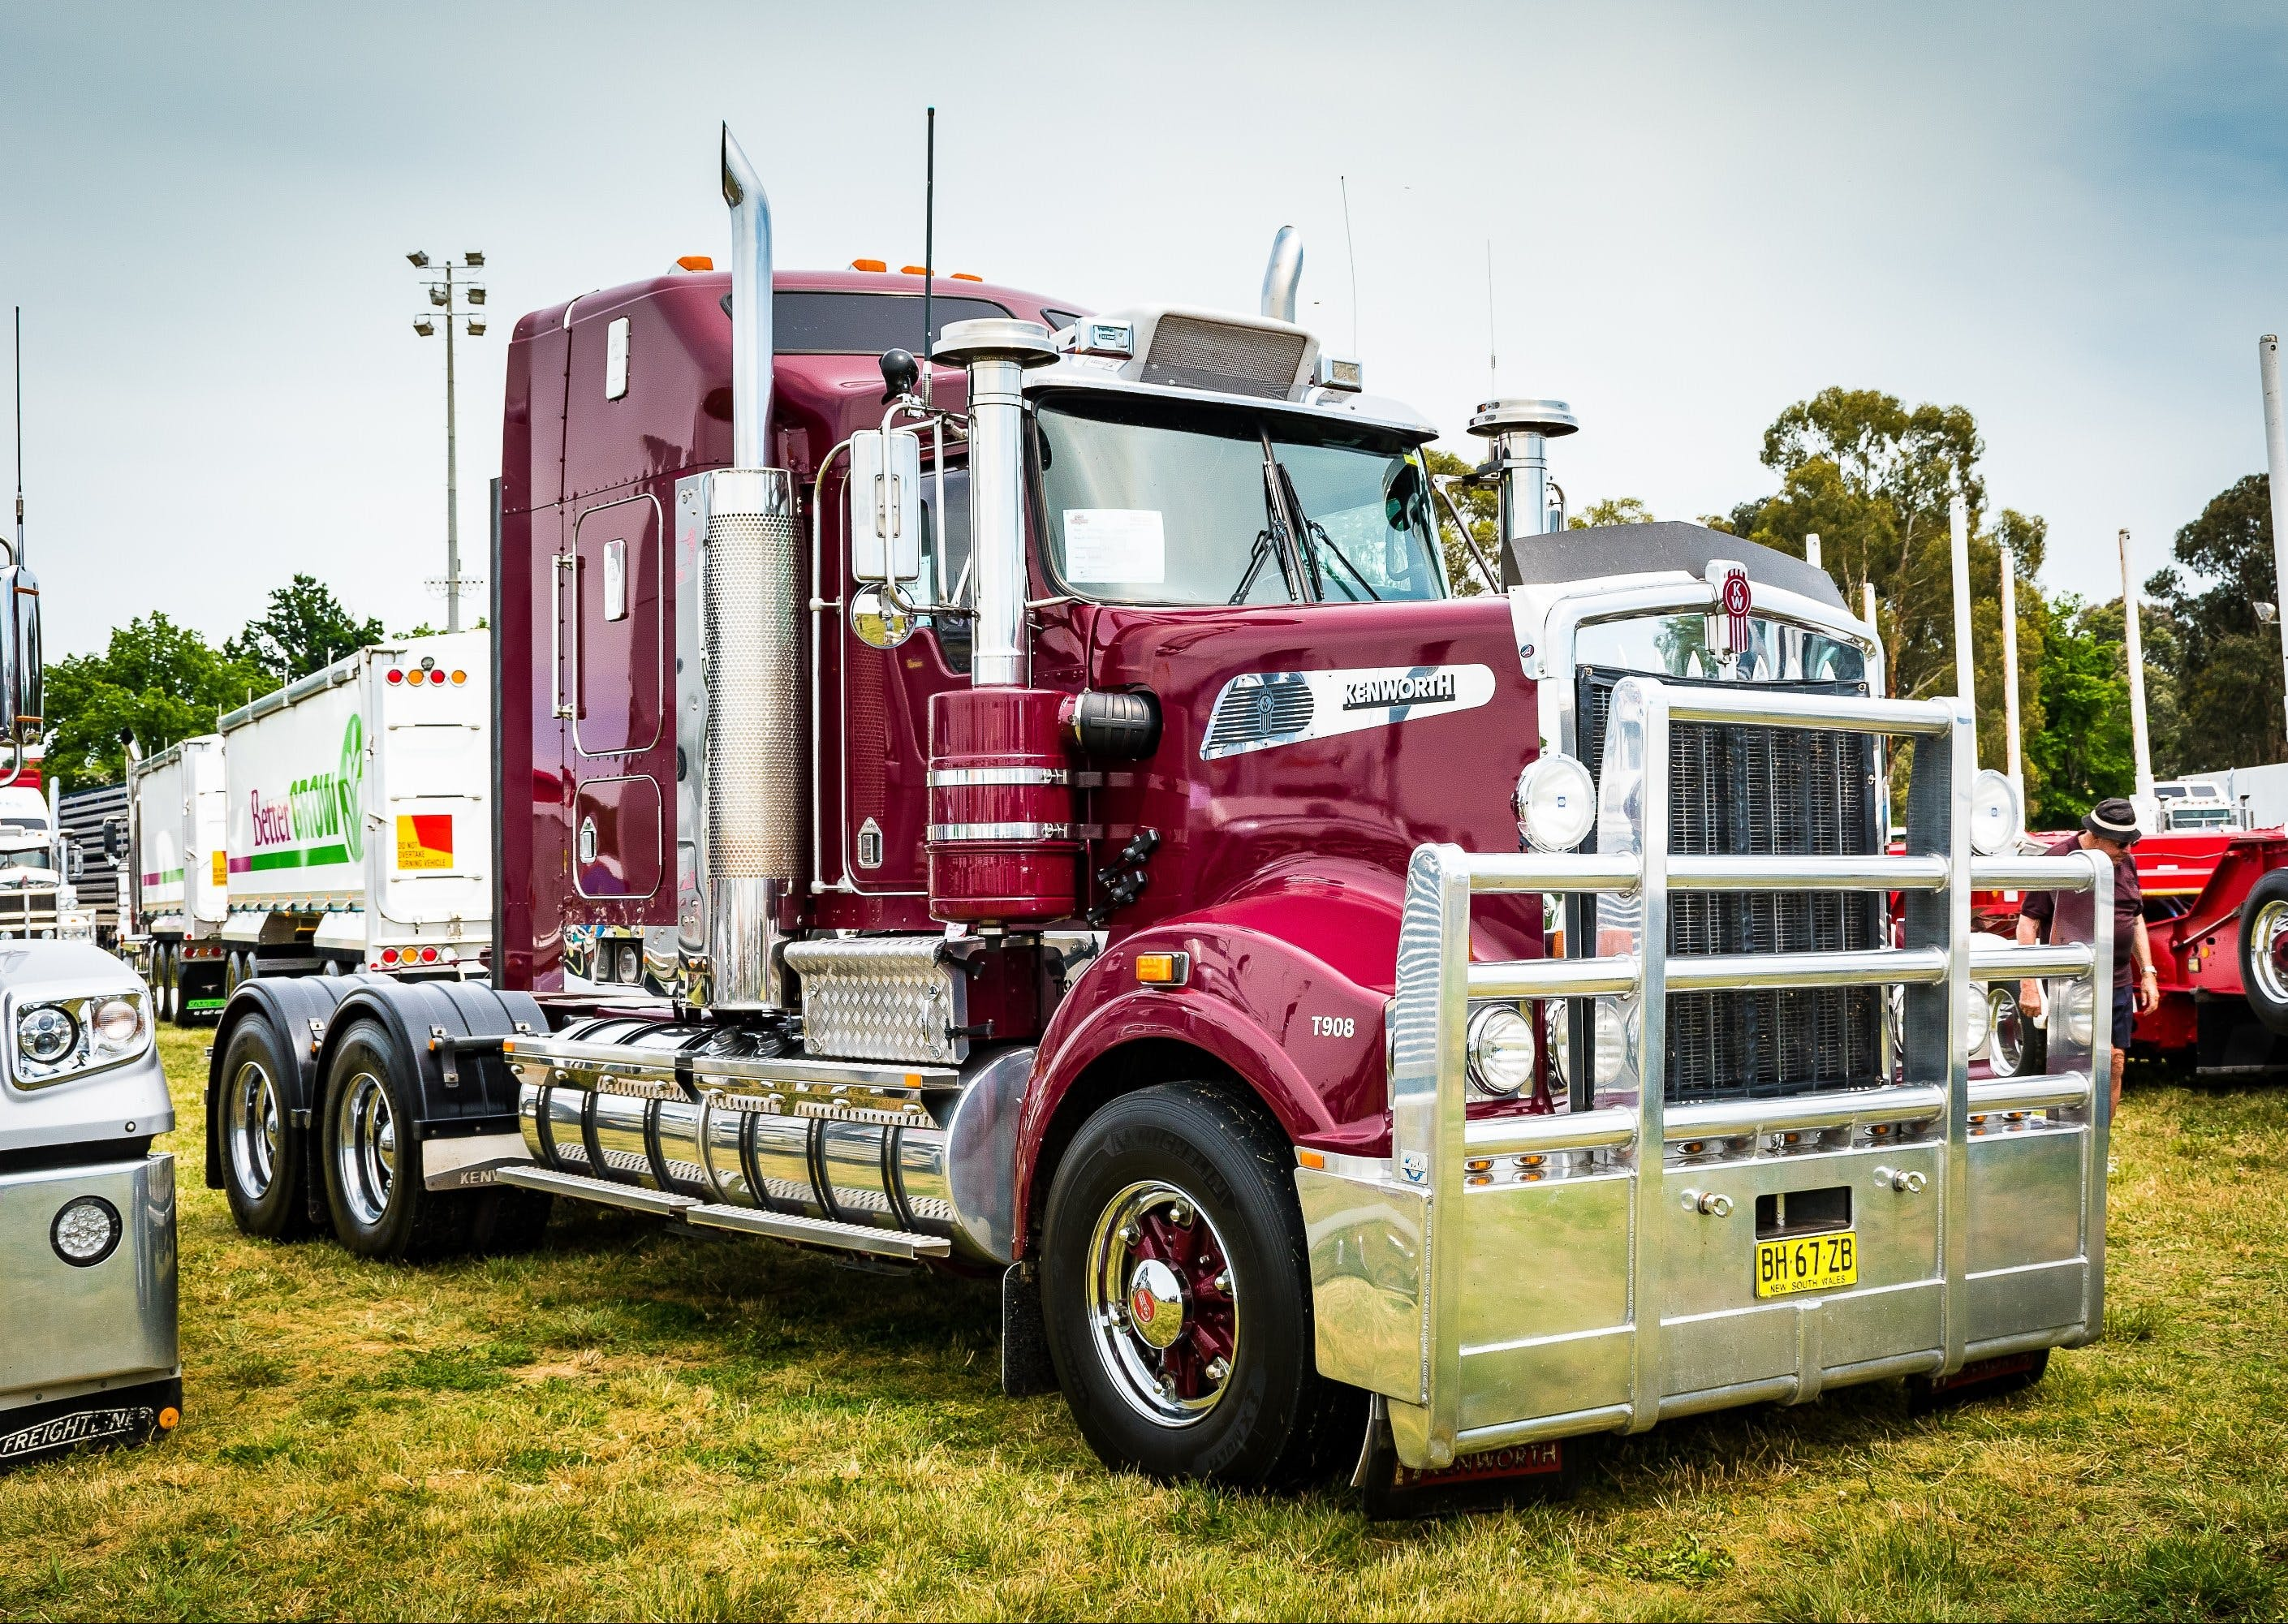 Dane Ballinger Memorial Truck Show - Accommodation Resorts